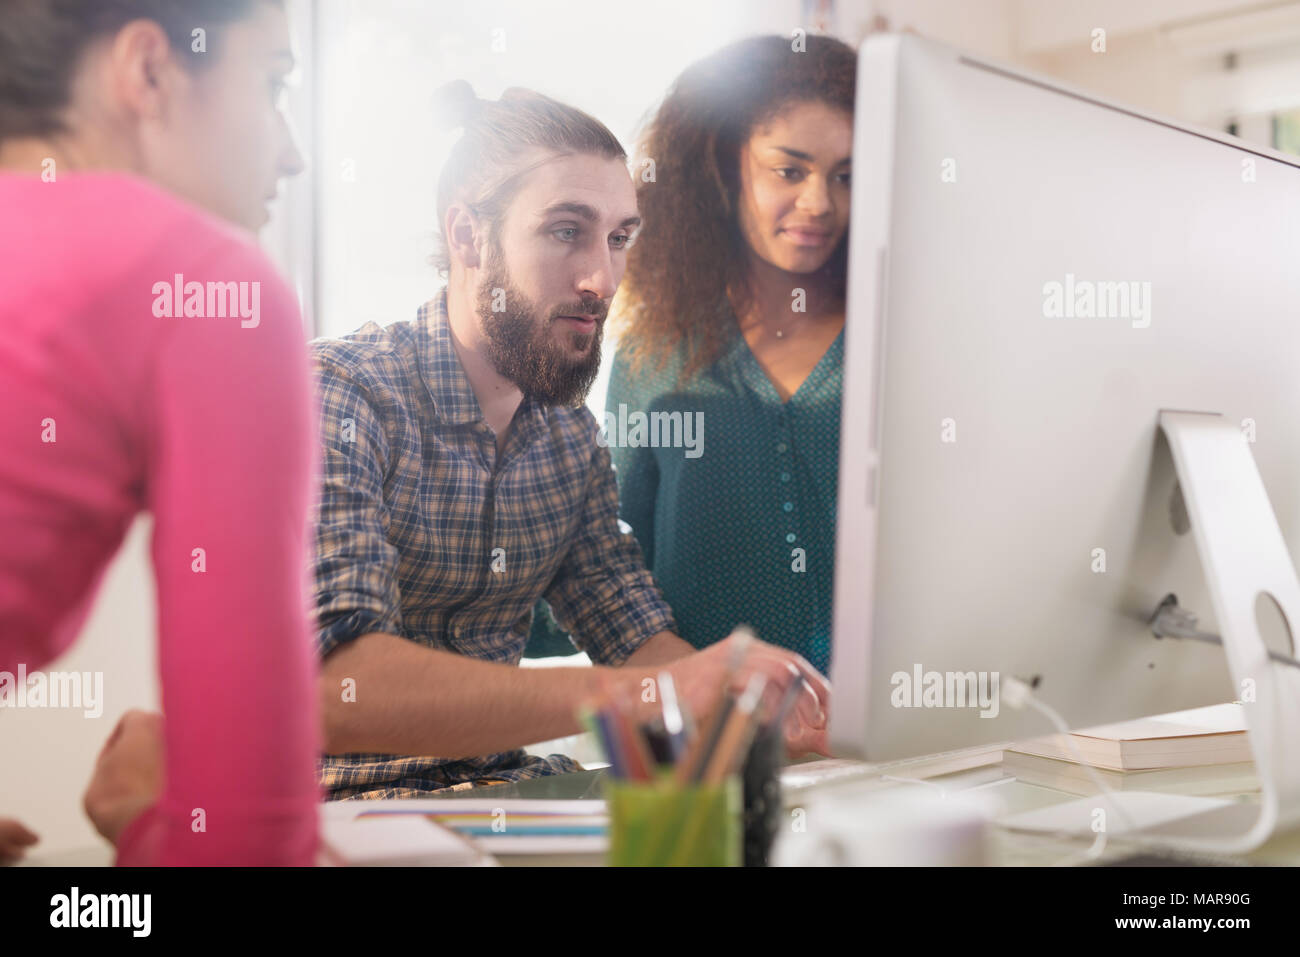 Working meeting in front of the computer to share ideas on project - Stock Image